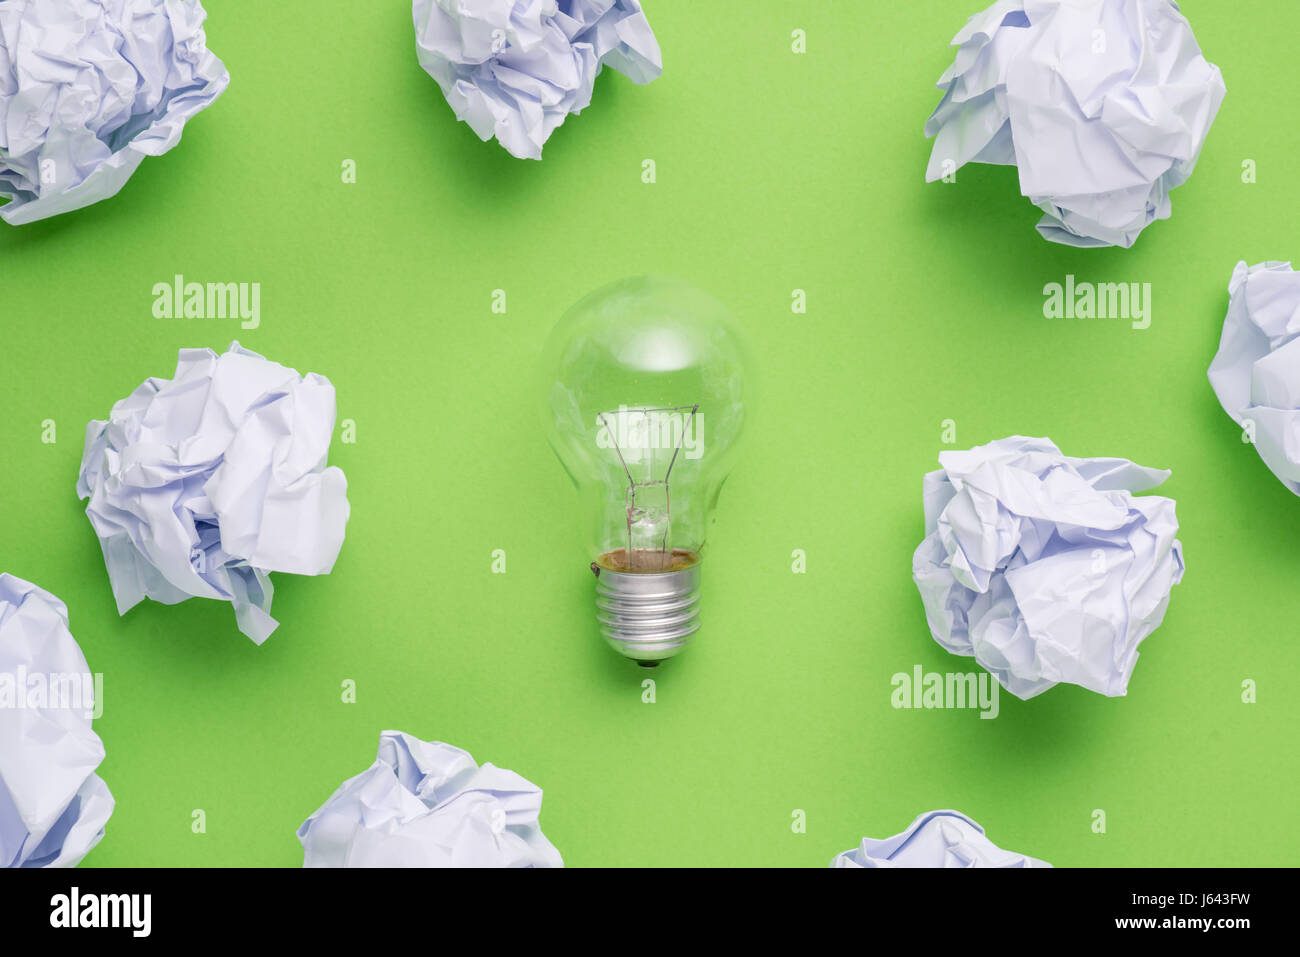 new idea concept with crumpled office paper and light bulb - Stock Image